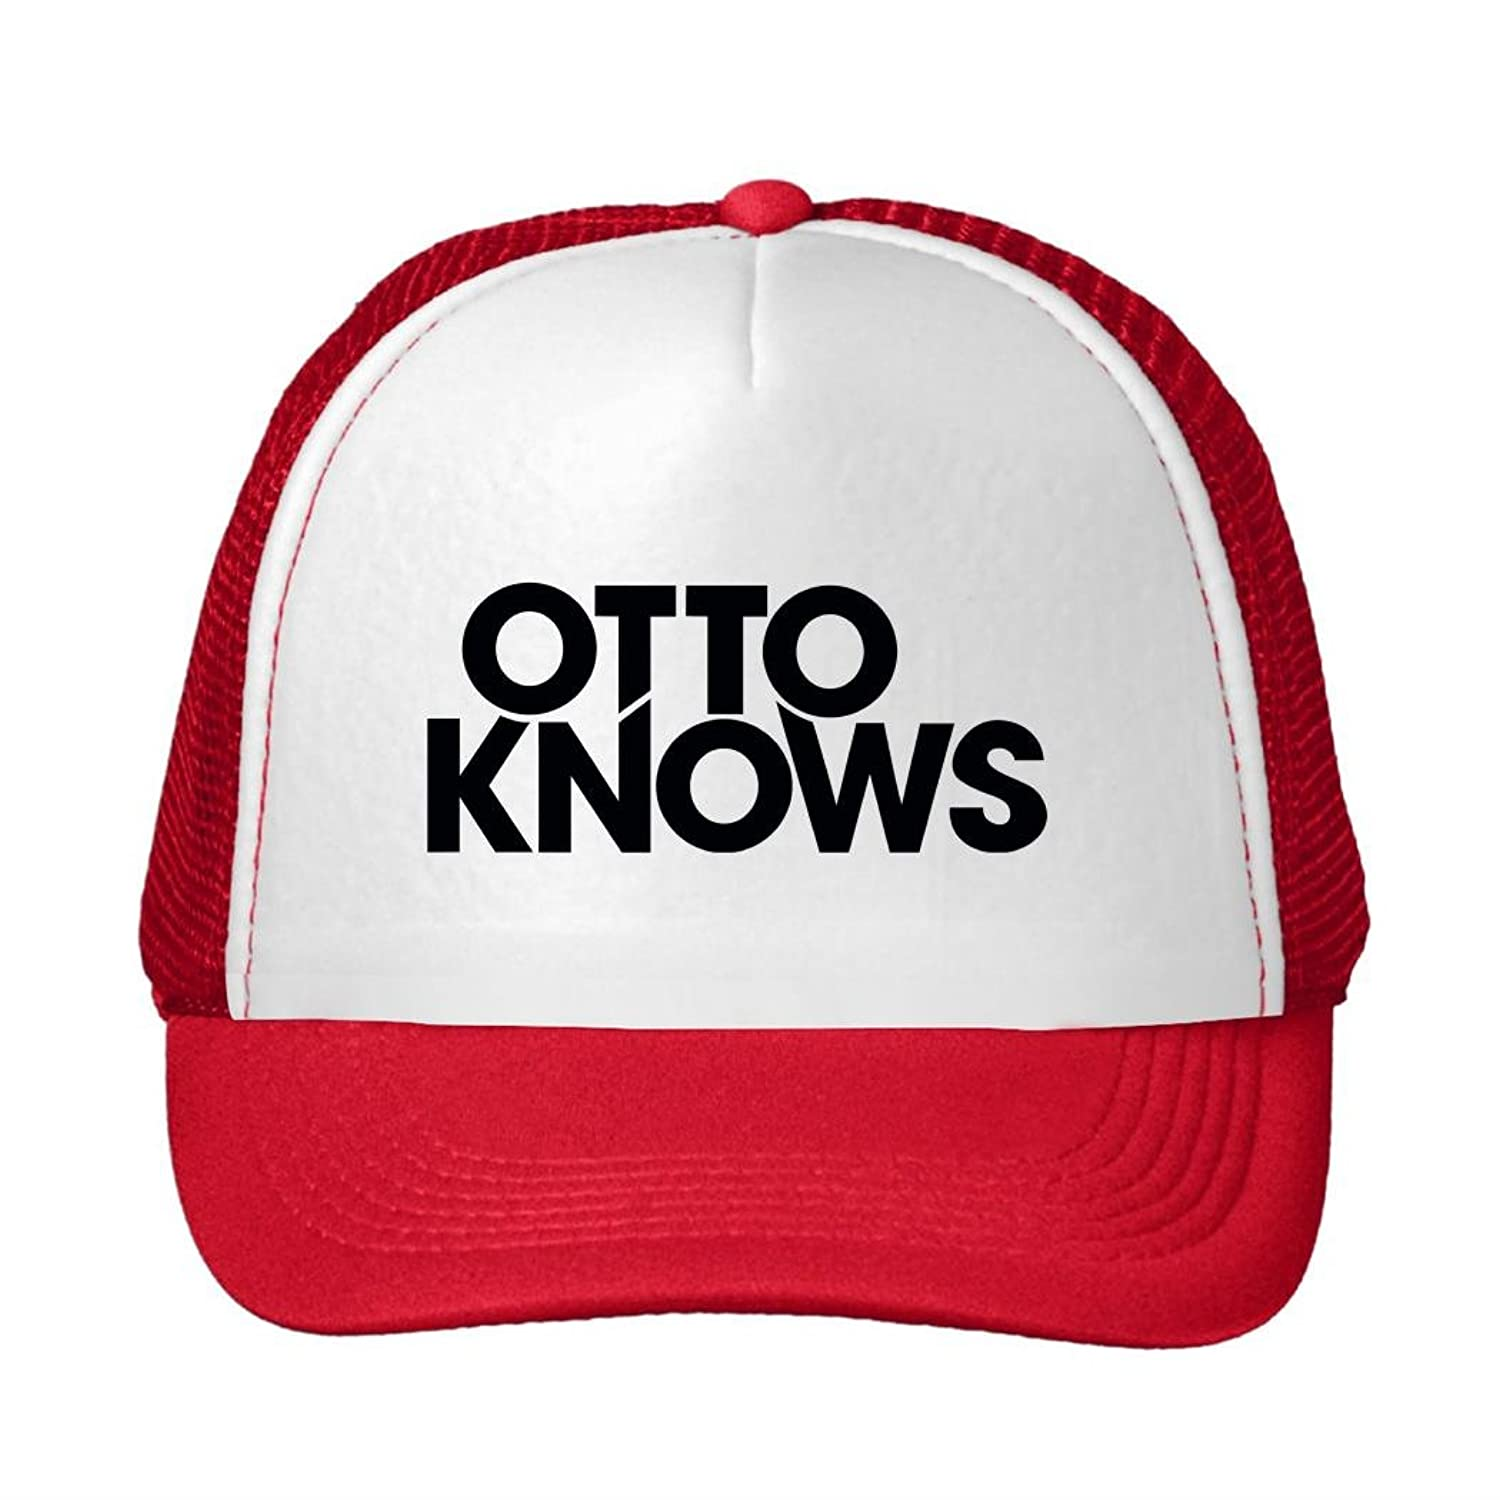 Corey Fantastic Baseball Cap Otto Knows Logo Snapback Trucker Hat